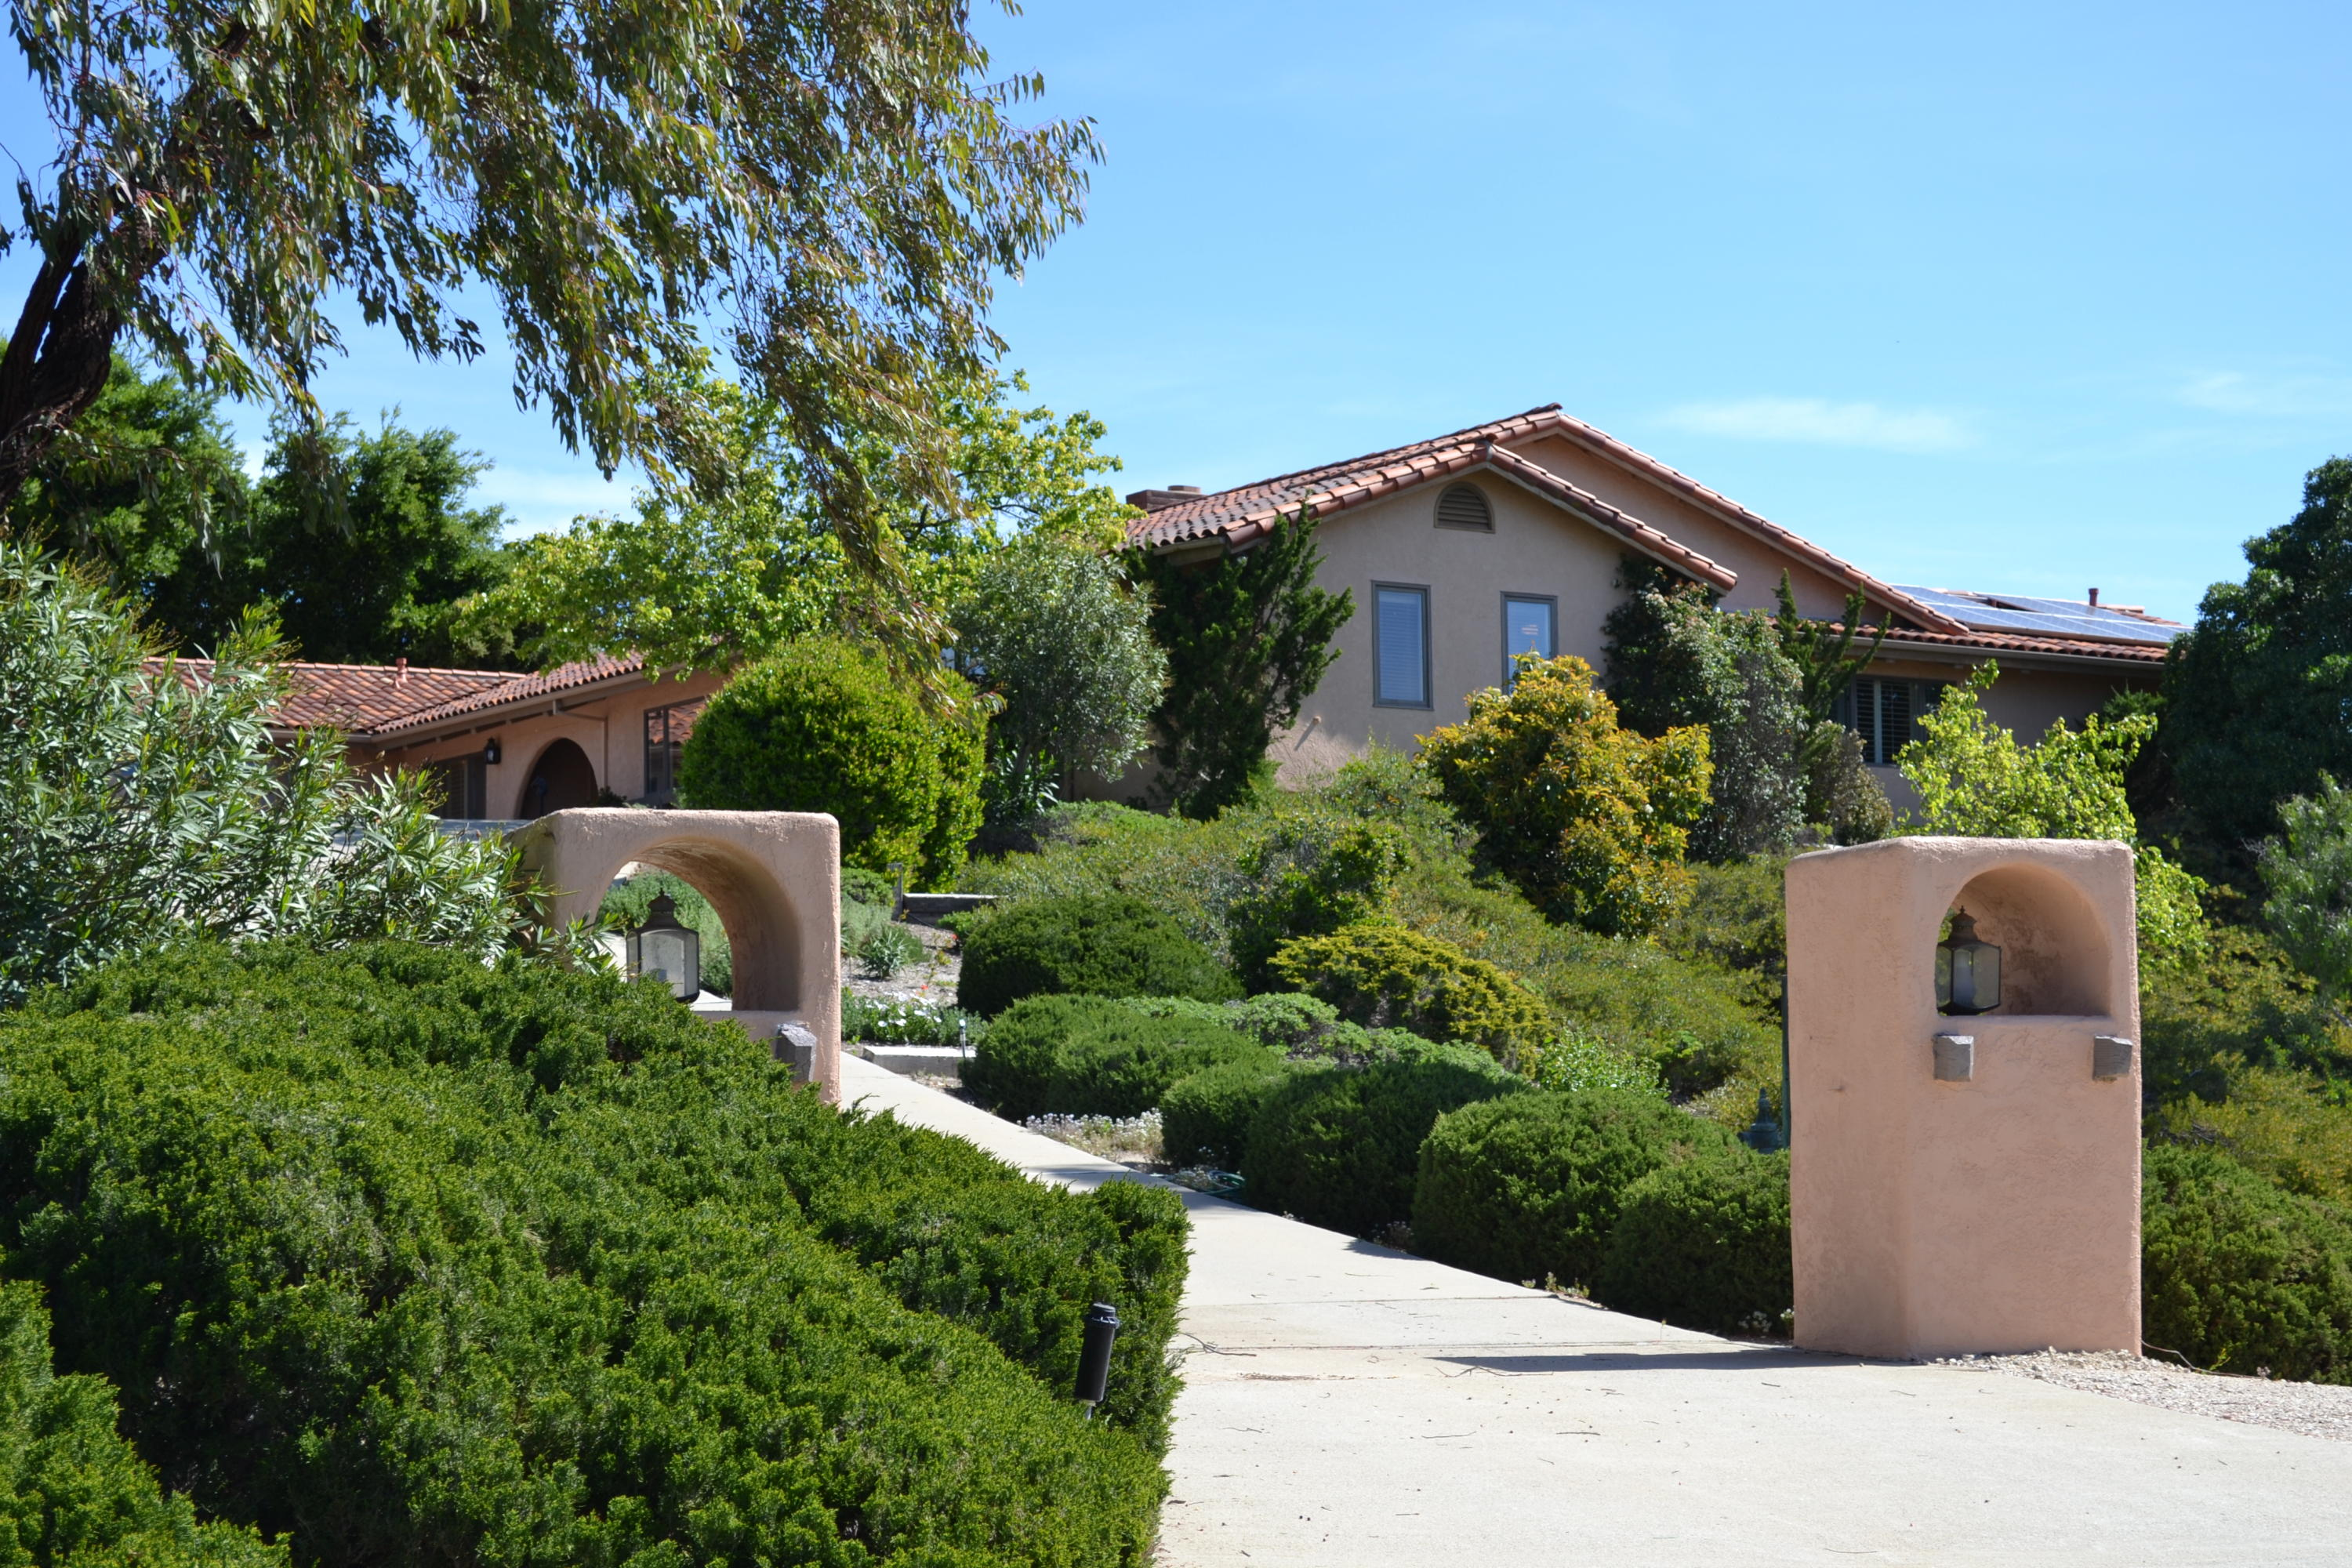 Property photo for 3140 Box Canyon Rd Santa Ynez, California 93460 - 16-3390